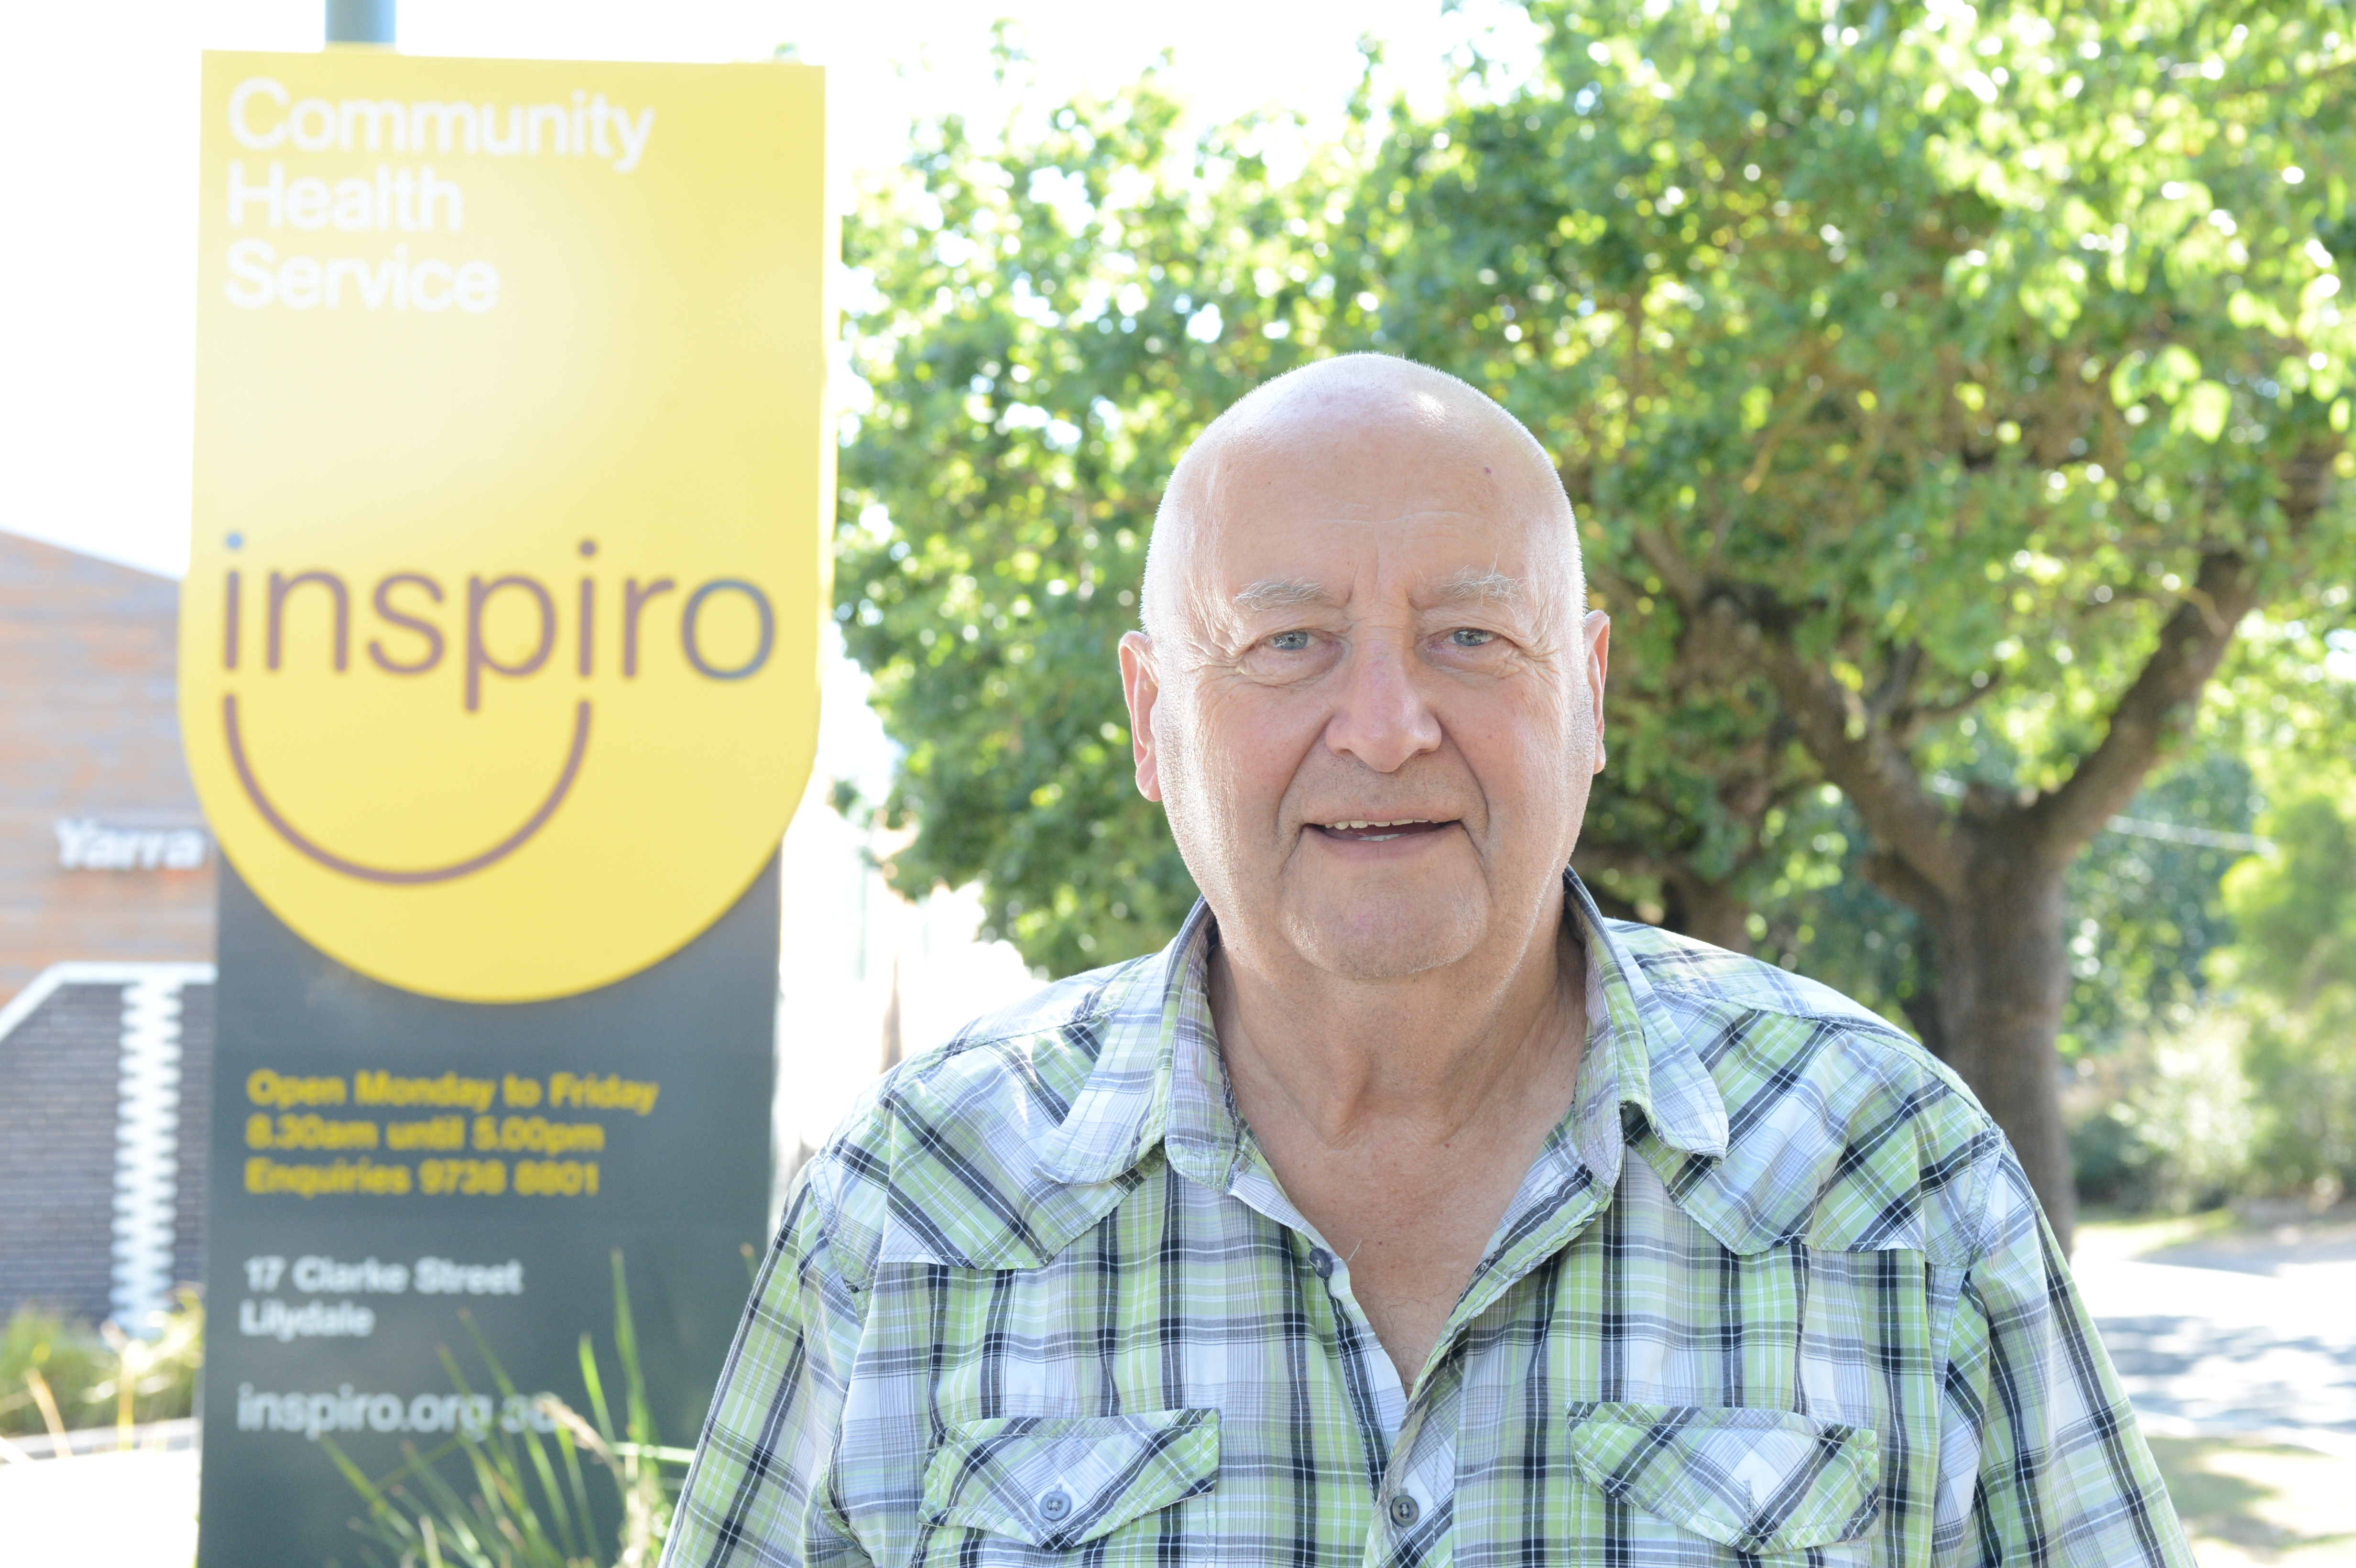 What NDIS supports and services does Inspiro provide?